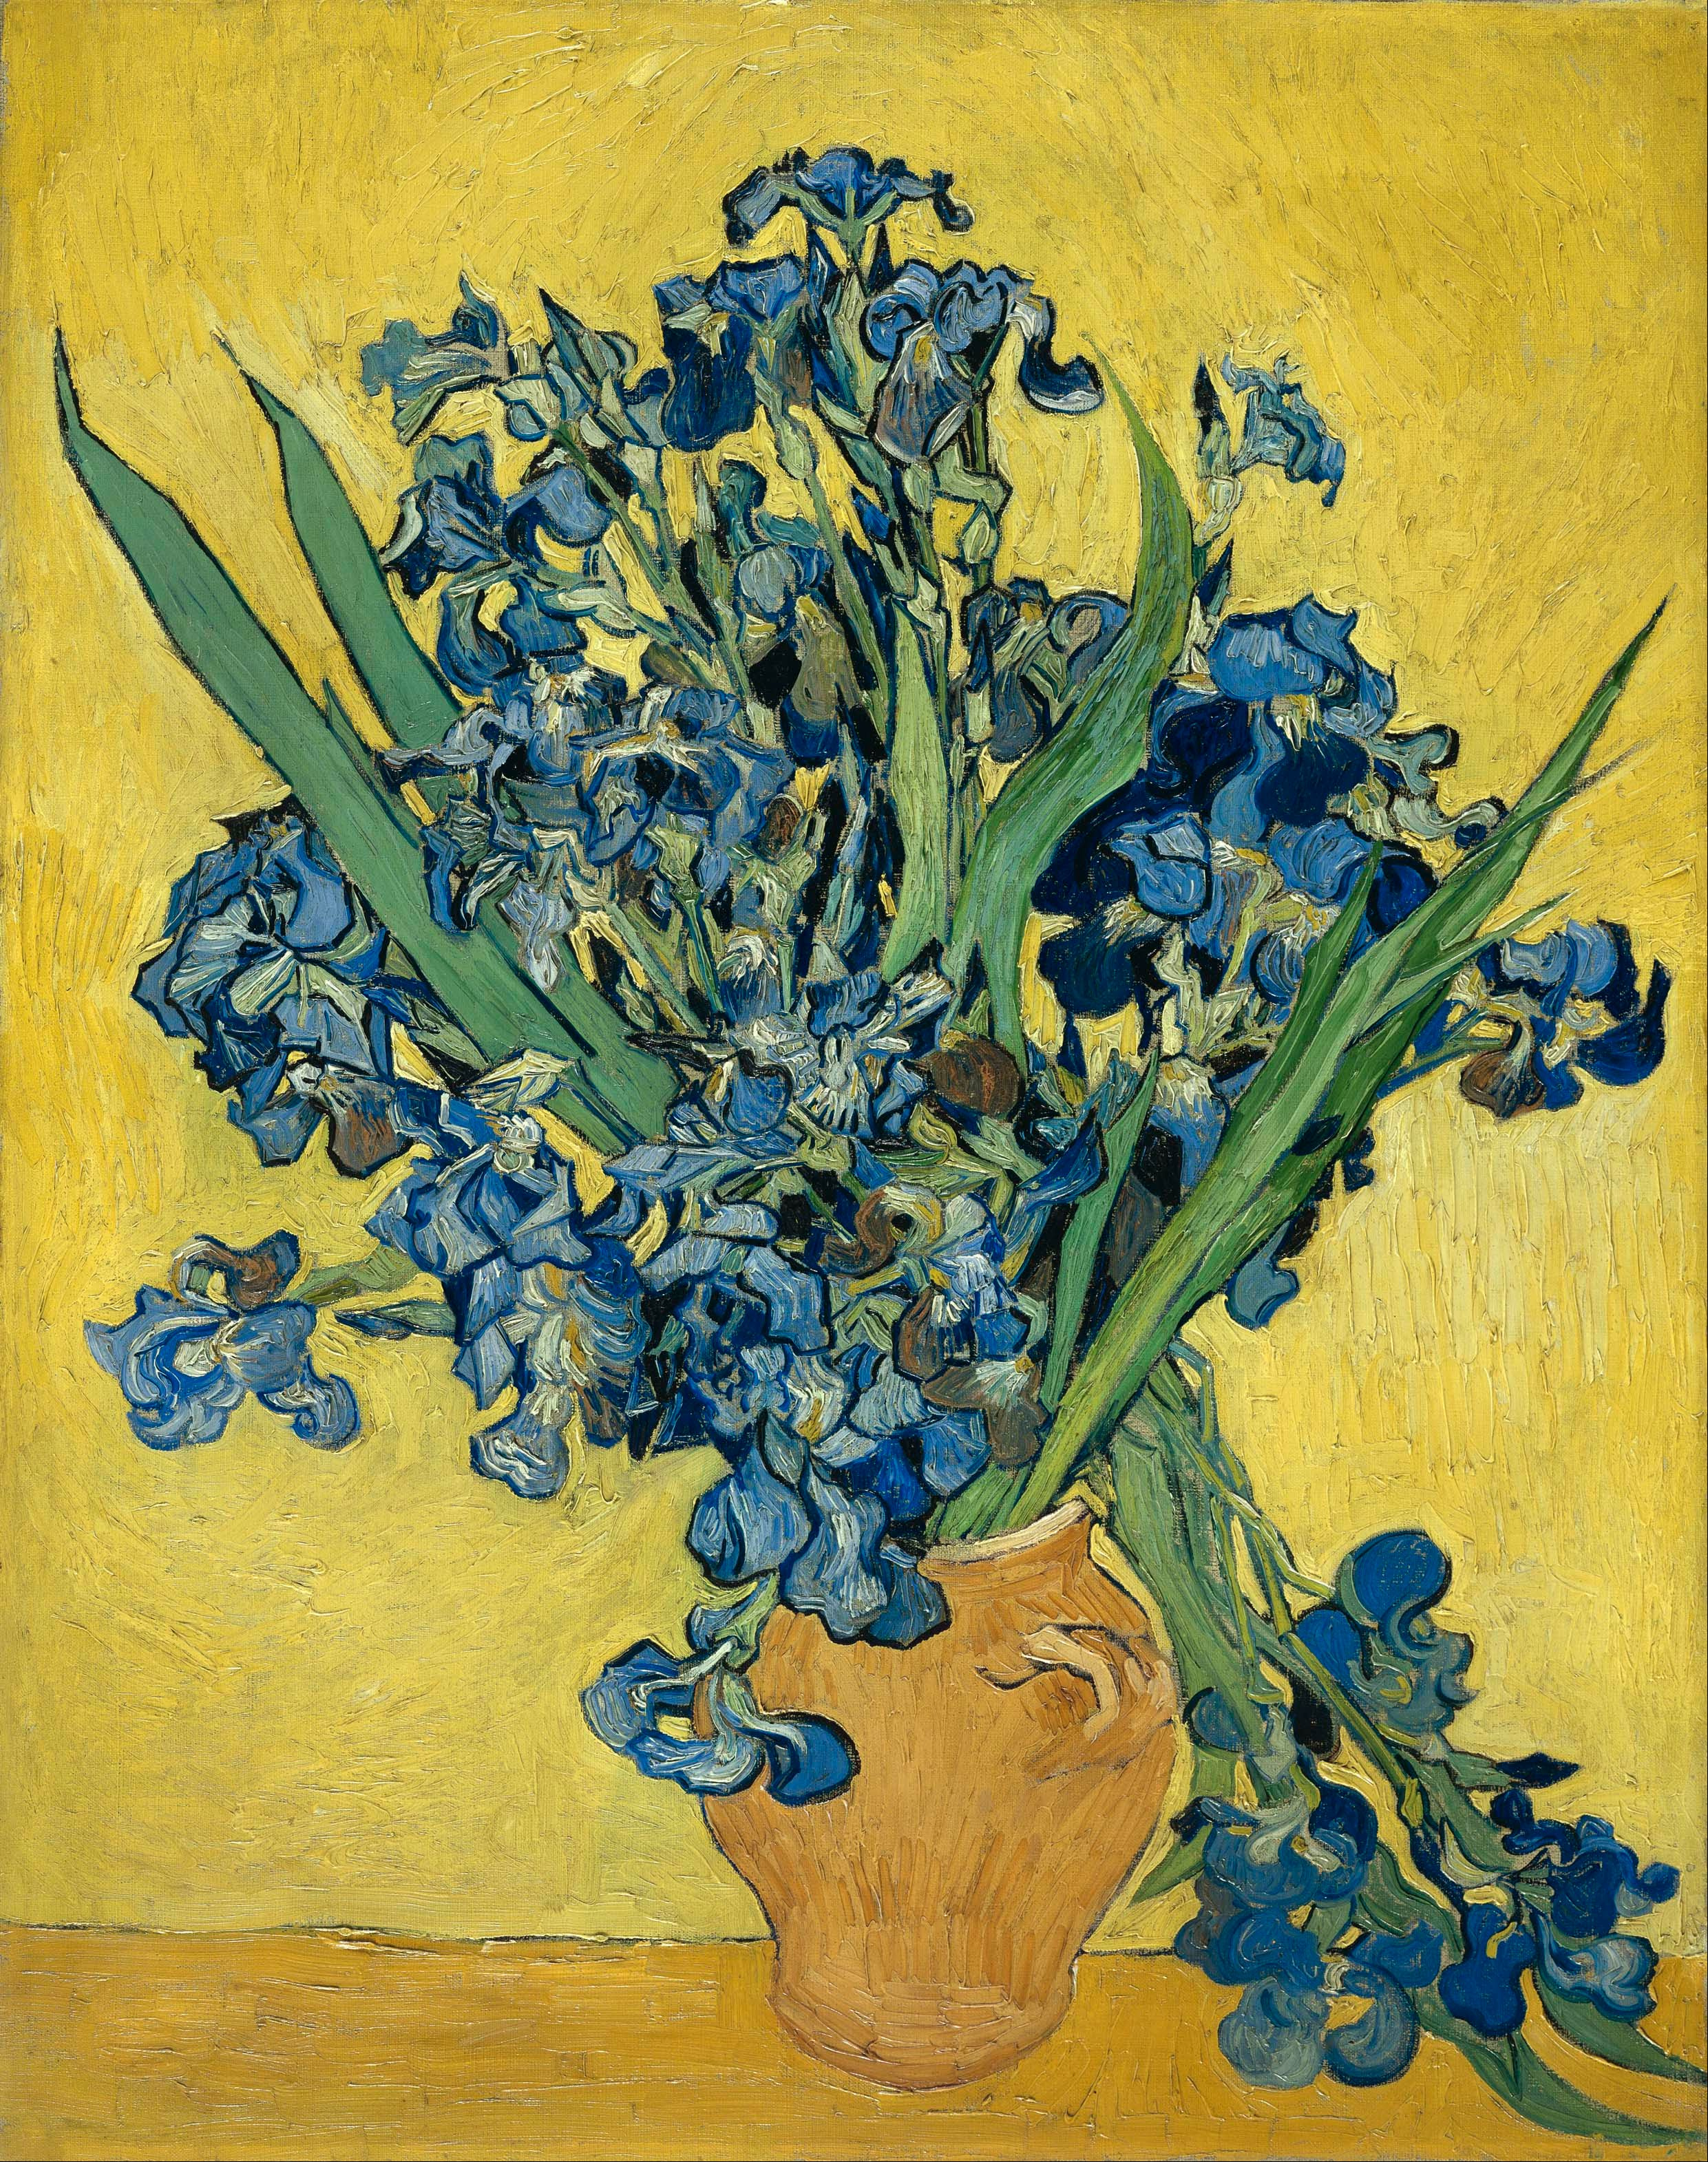 Vincent_van_Gogh_-_Irises_-_Google_Art_Project.jpg